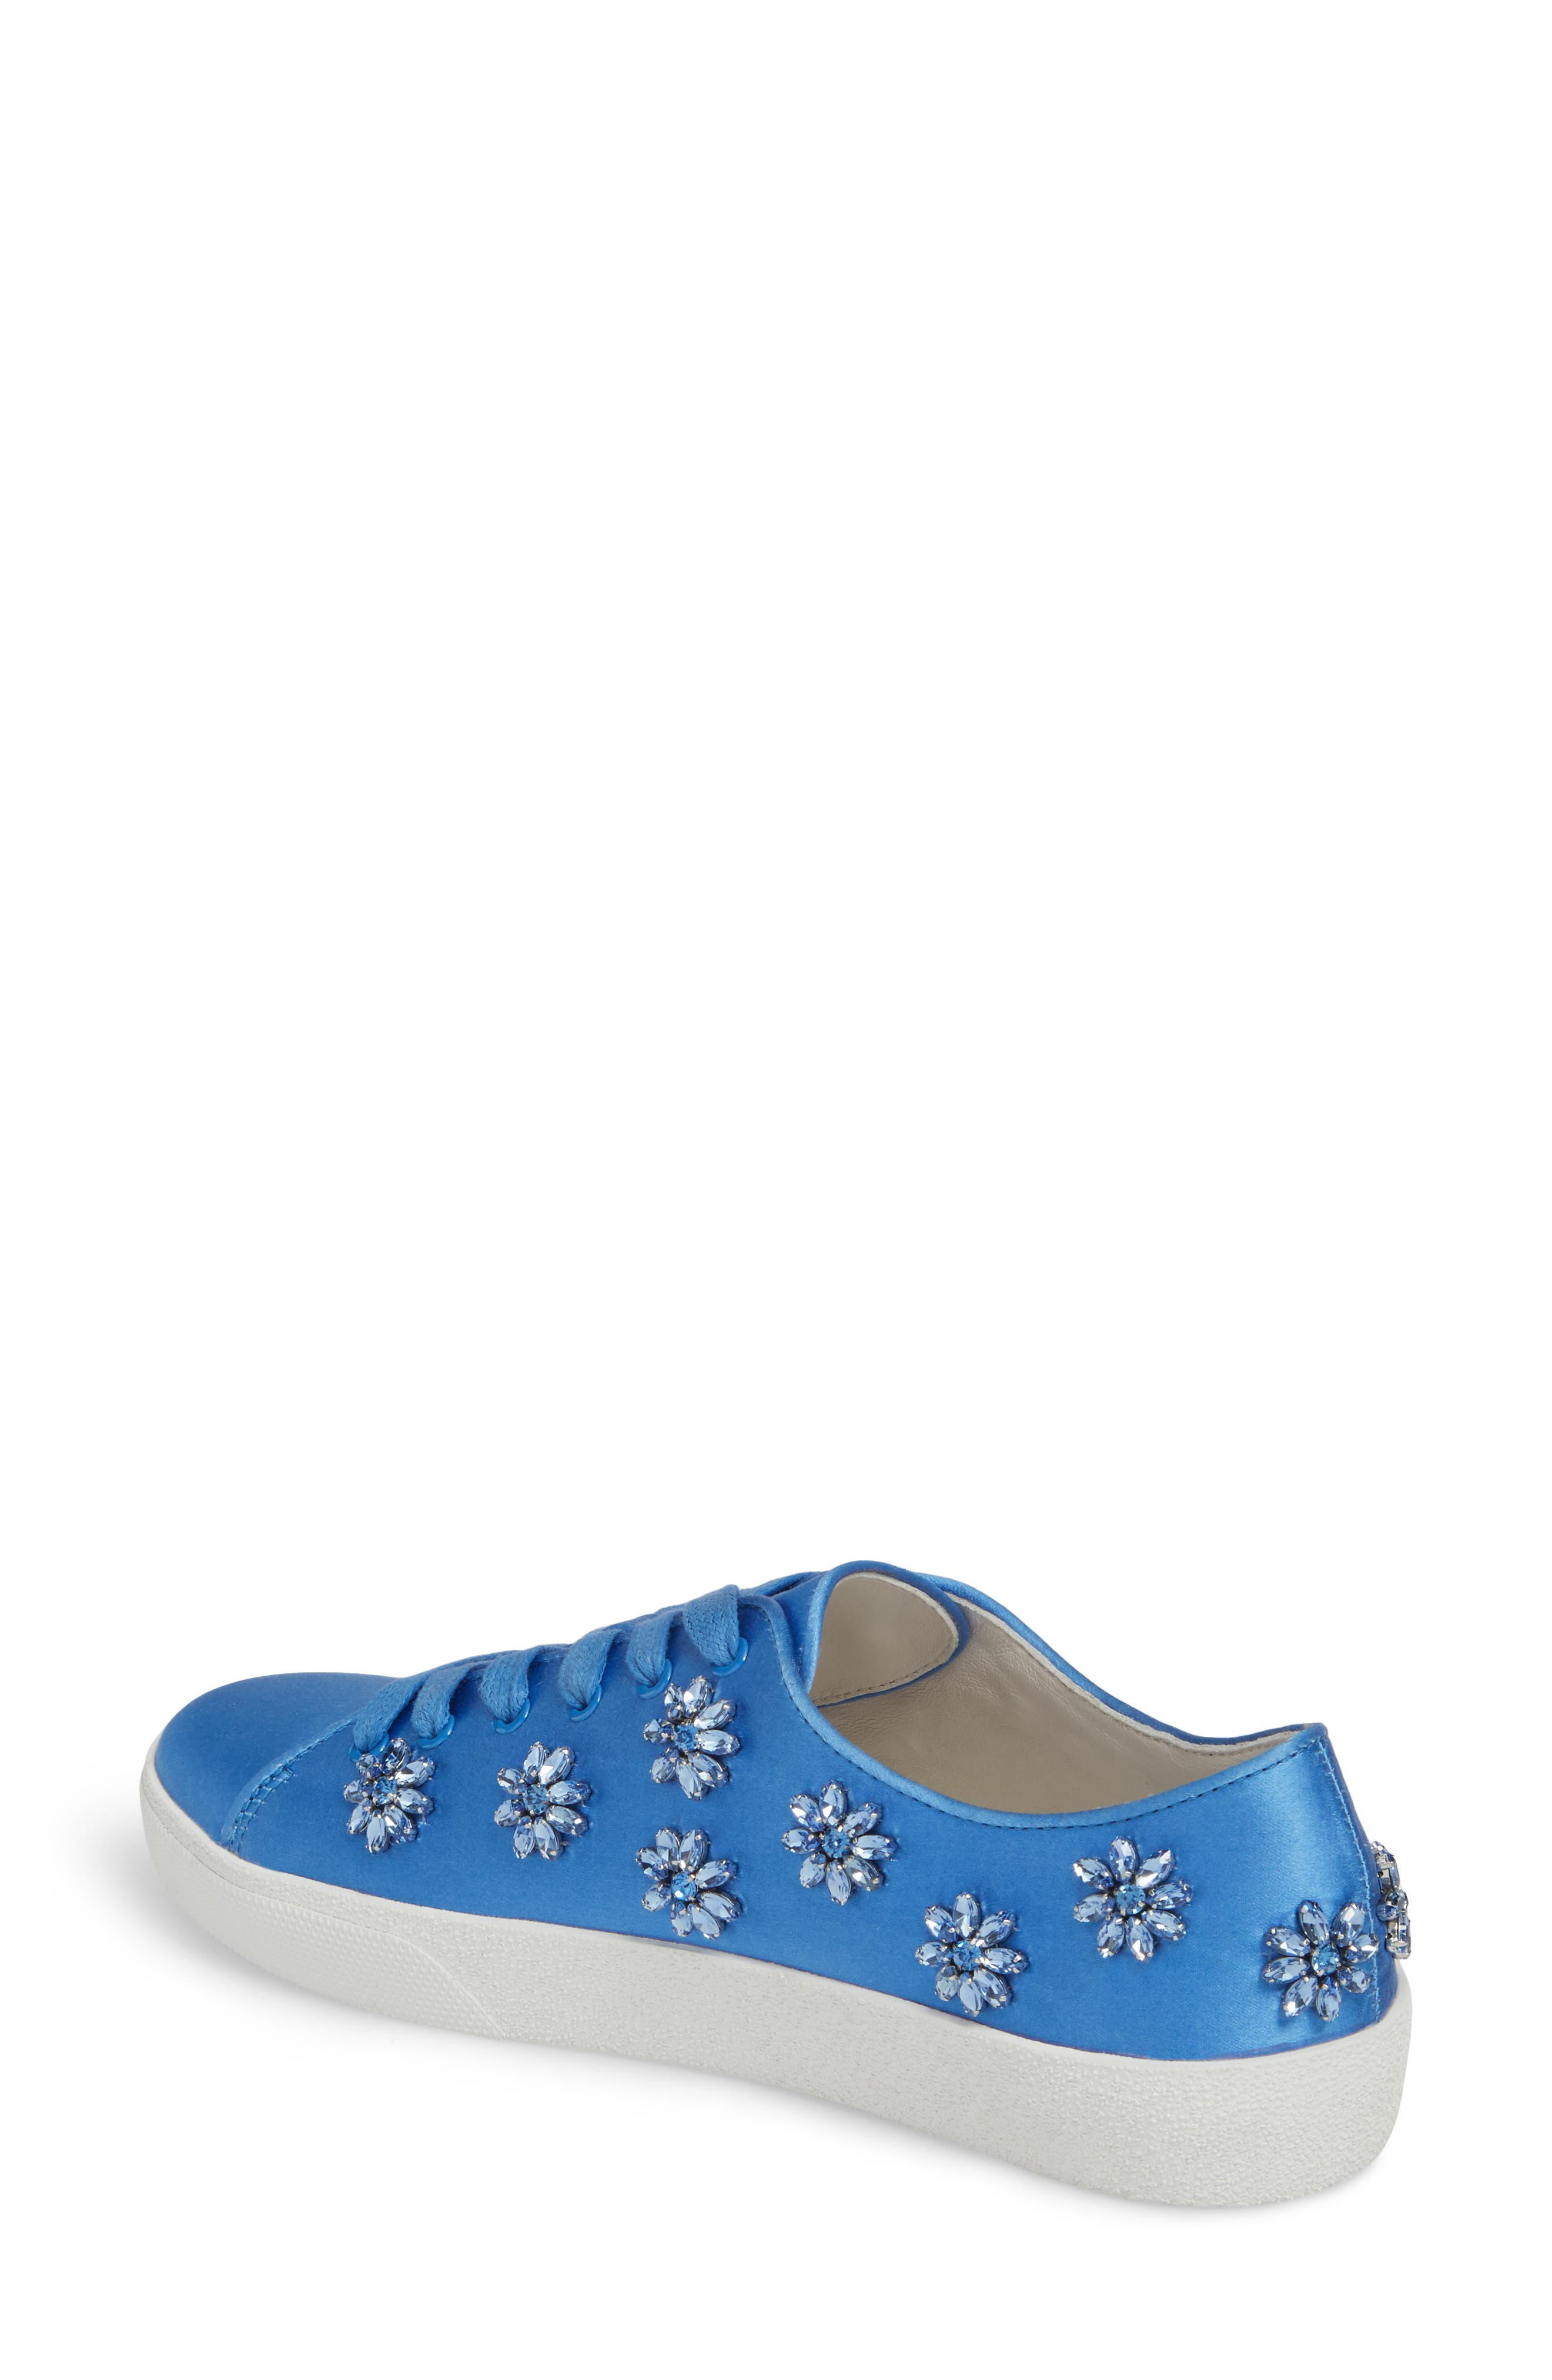 Cleo Crystal Embellished Sneaker,                             Alternate thumbnail 2, color,                             430